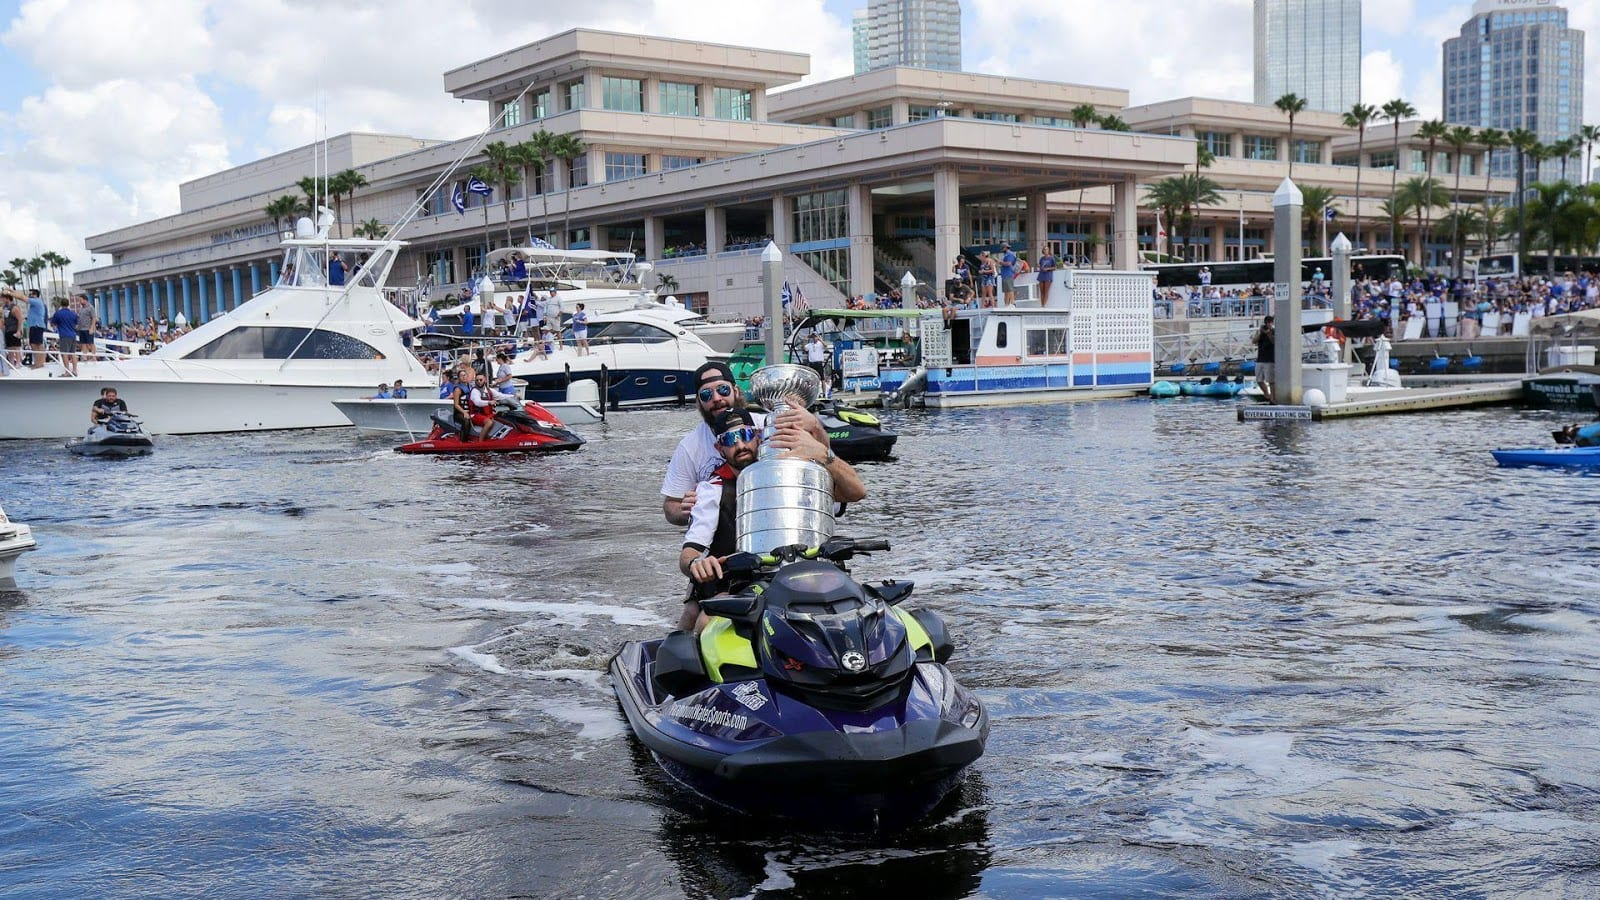 Tampa Bay celebrate their Stanley Cup win with a boat parade